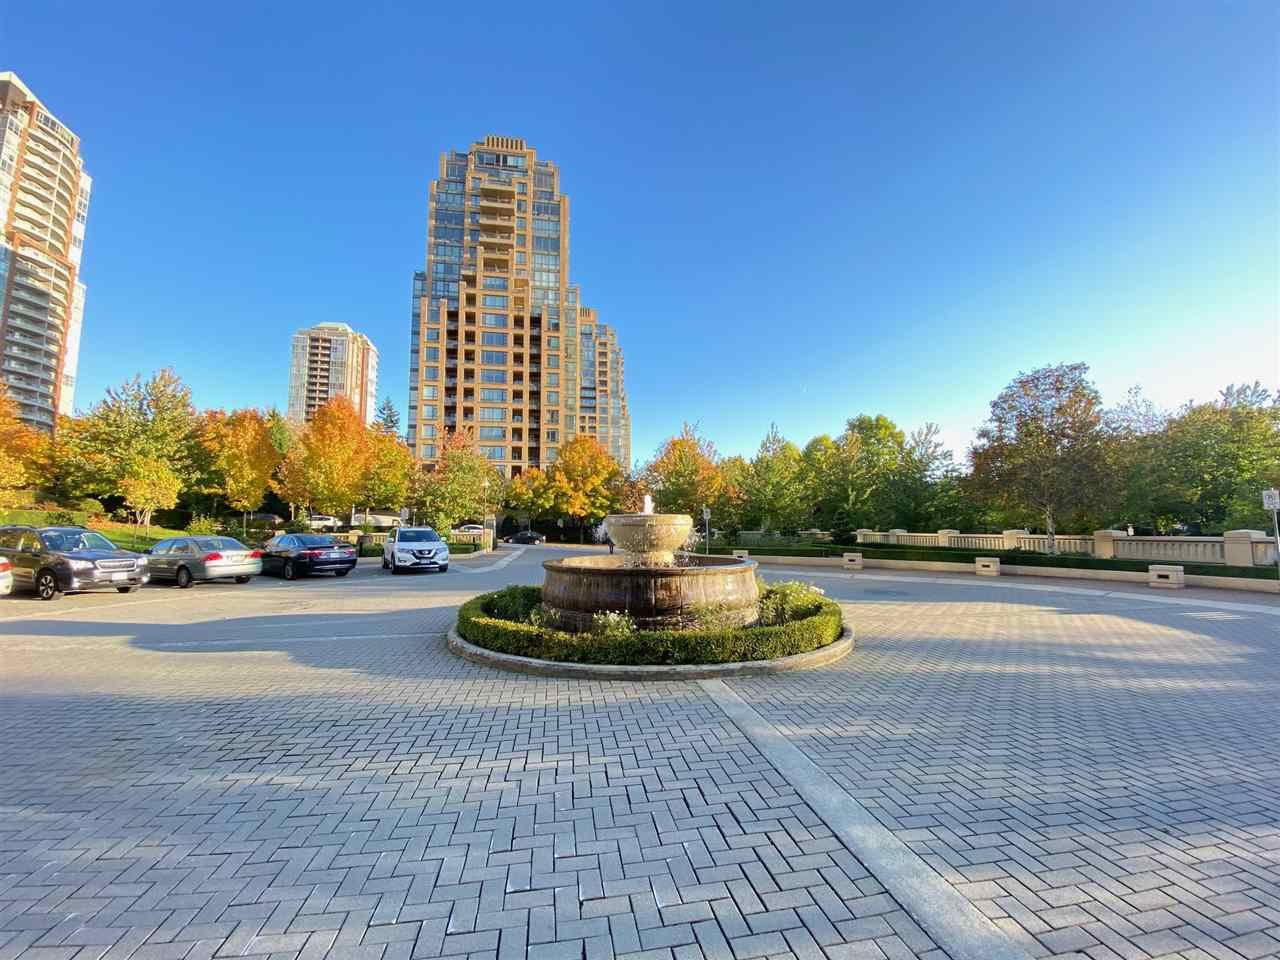 """Main Photo: 906 6823 STATION HILL Drive in Burnaby: South Slope Condo for sale in """"BELVEDERE"""" (Burnaby South)  : MLS®# R2534657"""